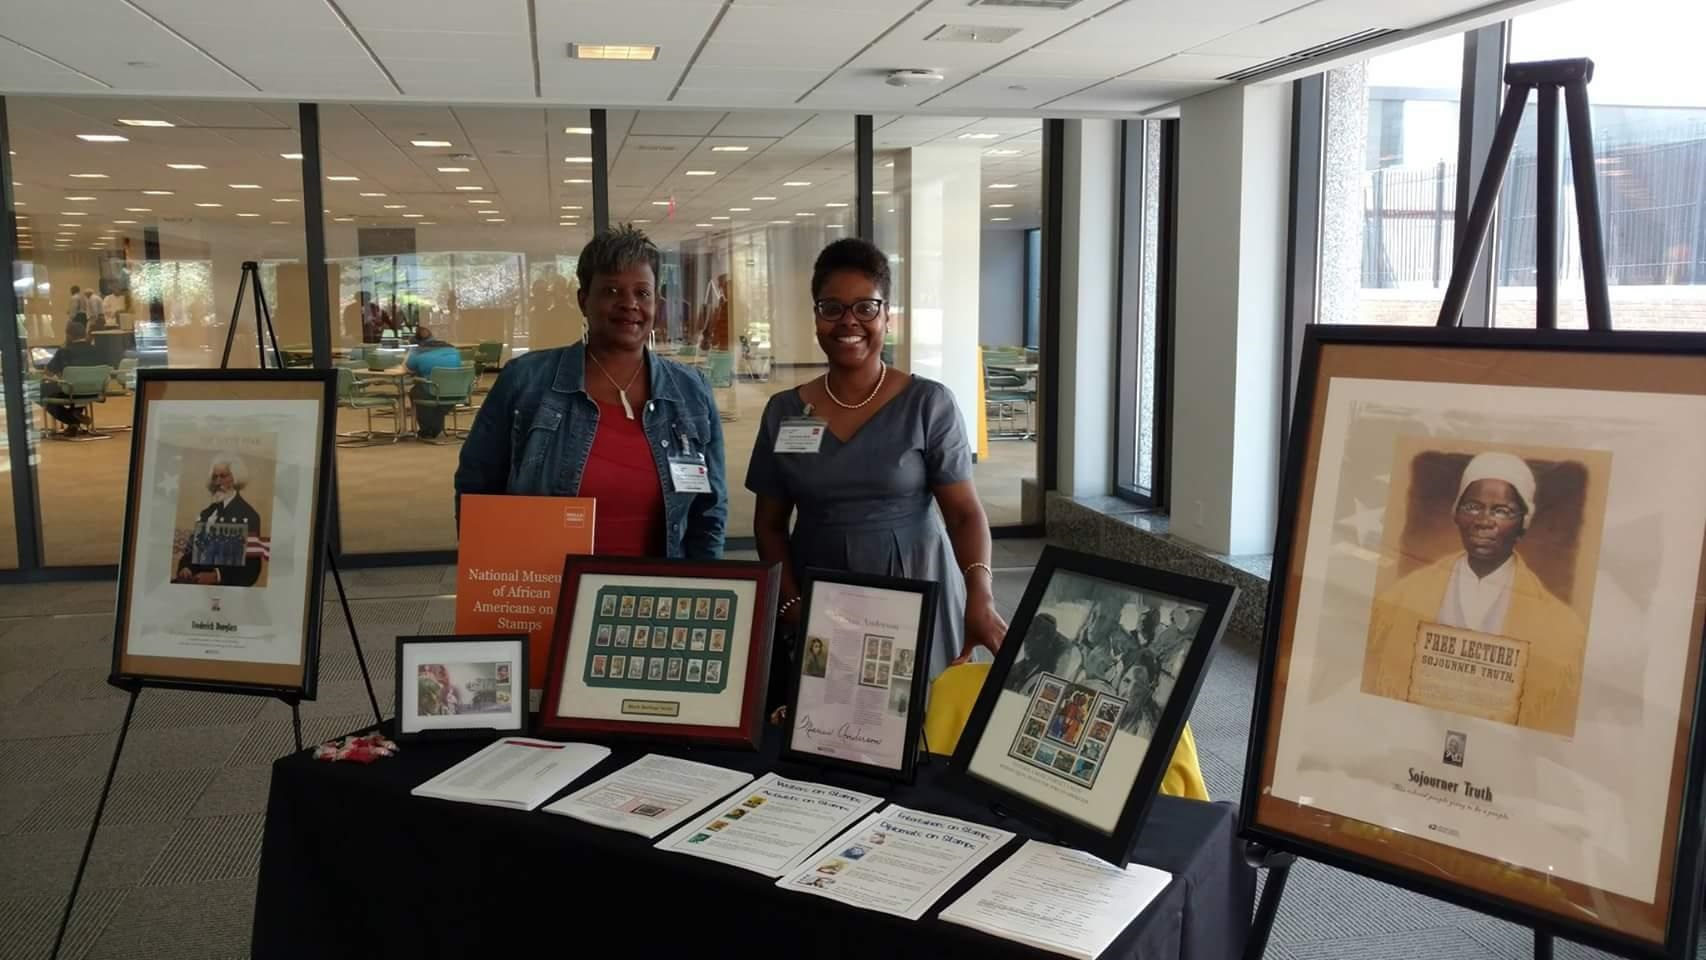 Two black women stand behind a table with various framed stamp collections.